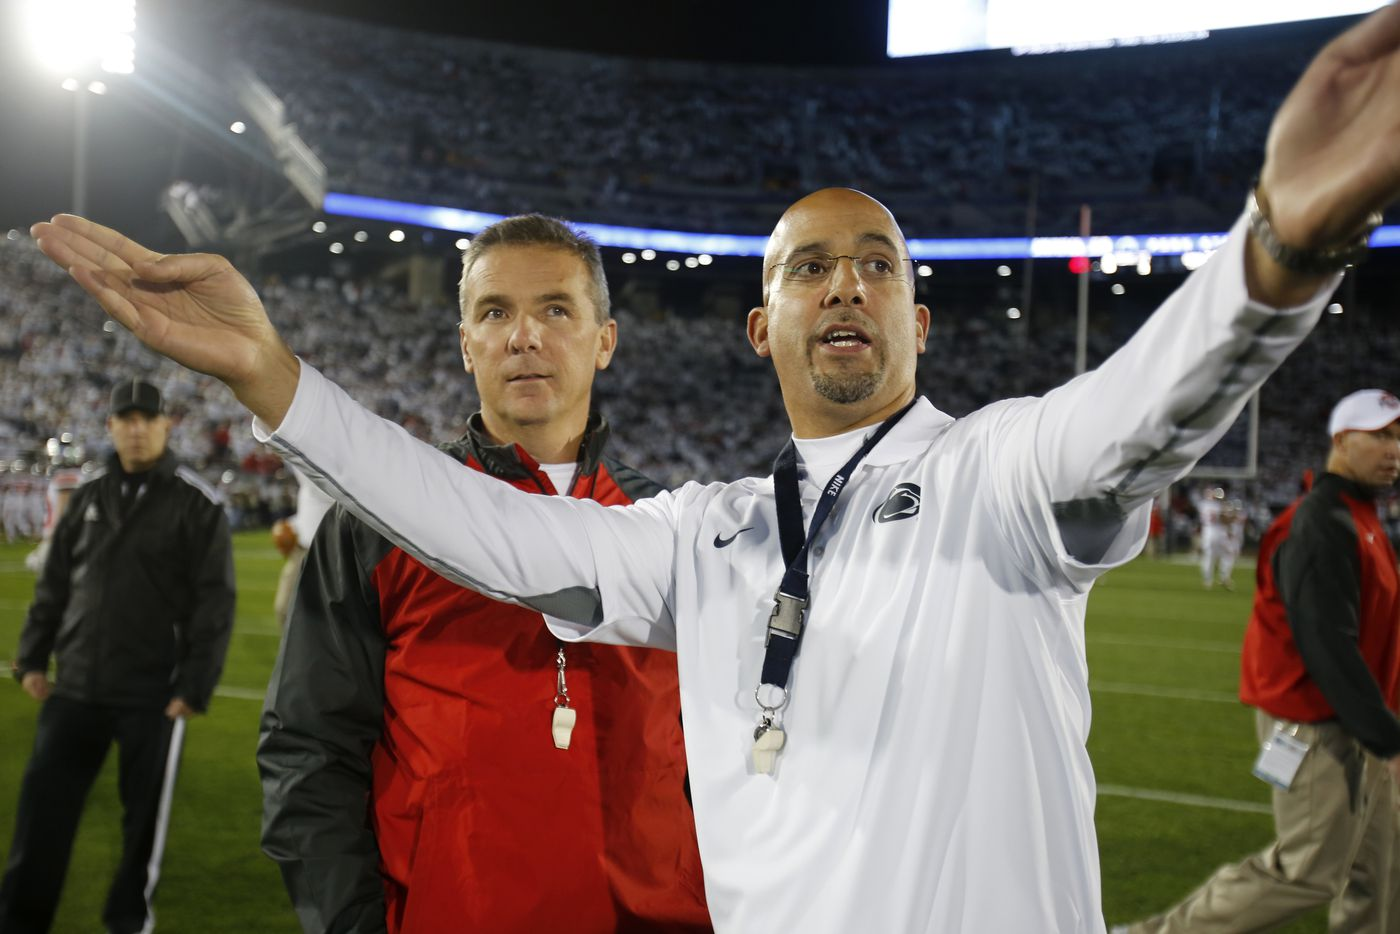 Forget Pitt. Ohio State has become Penn State's biggest rival.